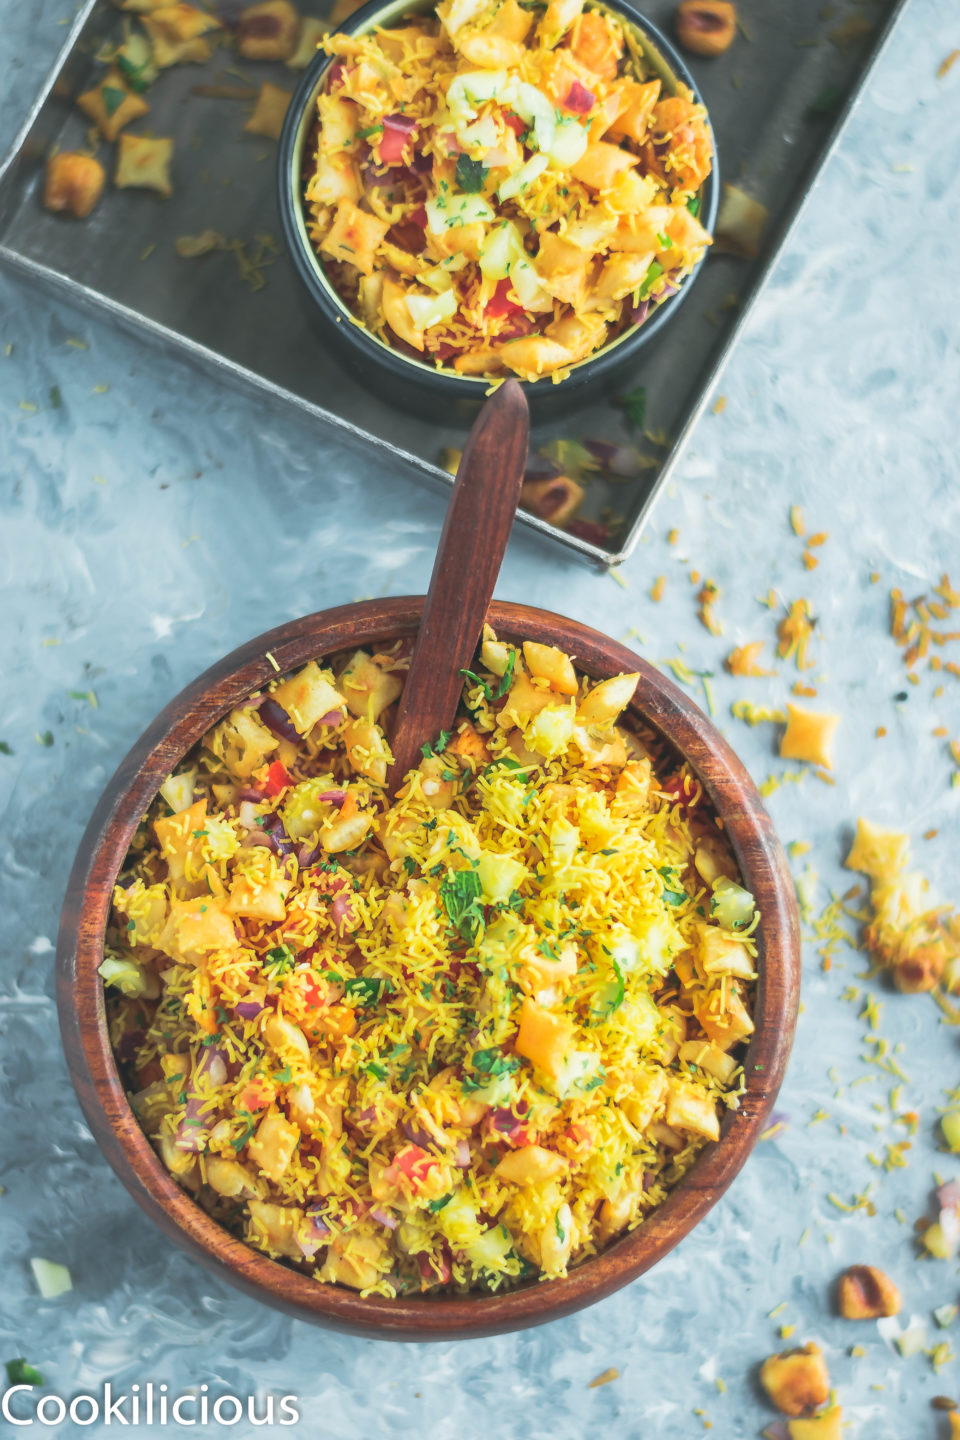 top angle shot of 2 bowls containing Crispy & Masaledar Cheeselings Bhel in a bowl with a spoon in it